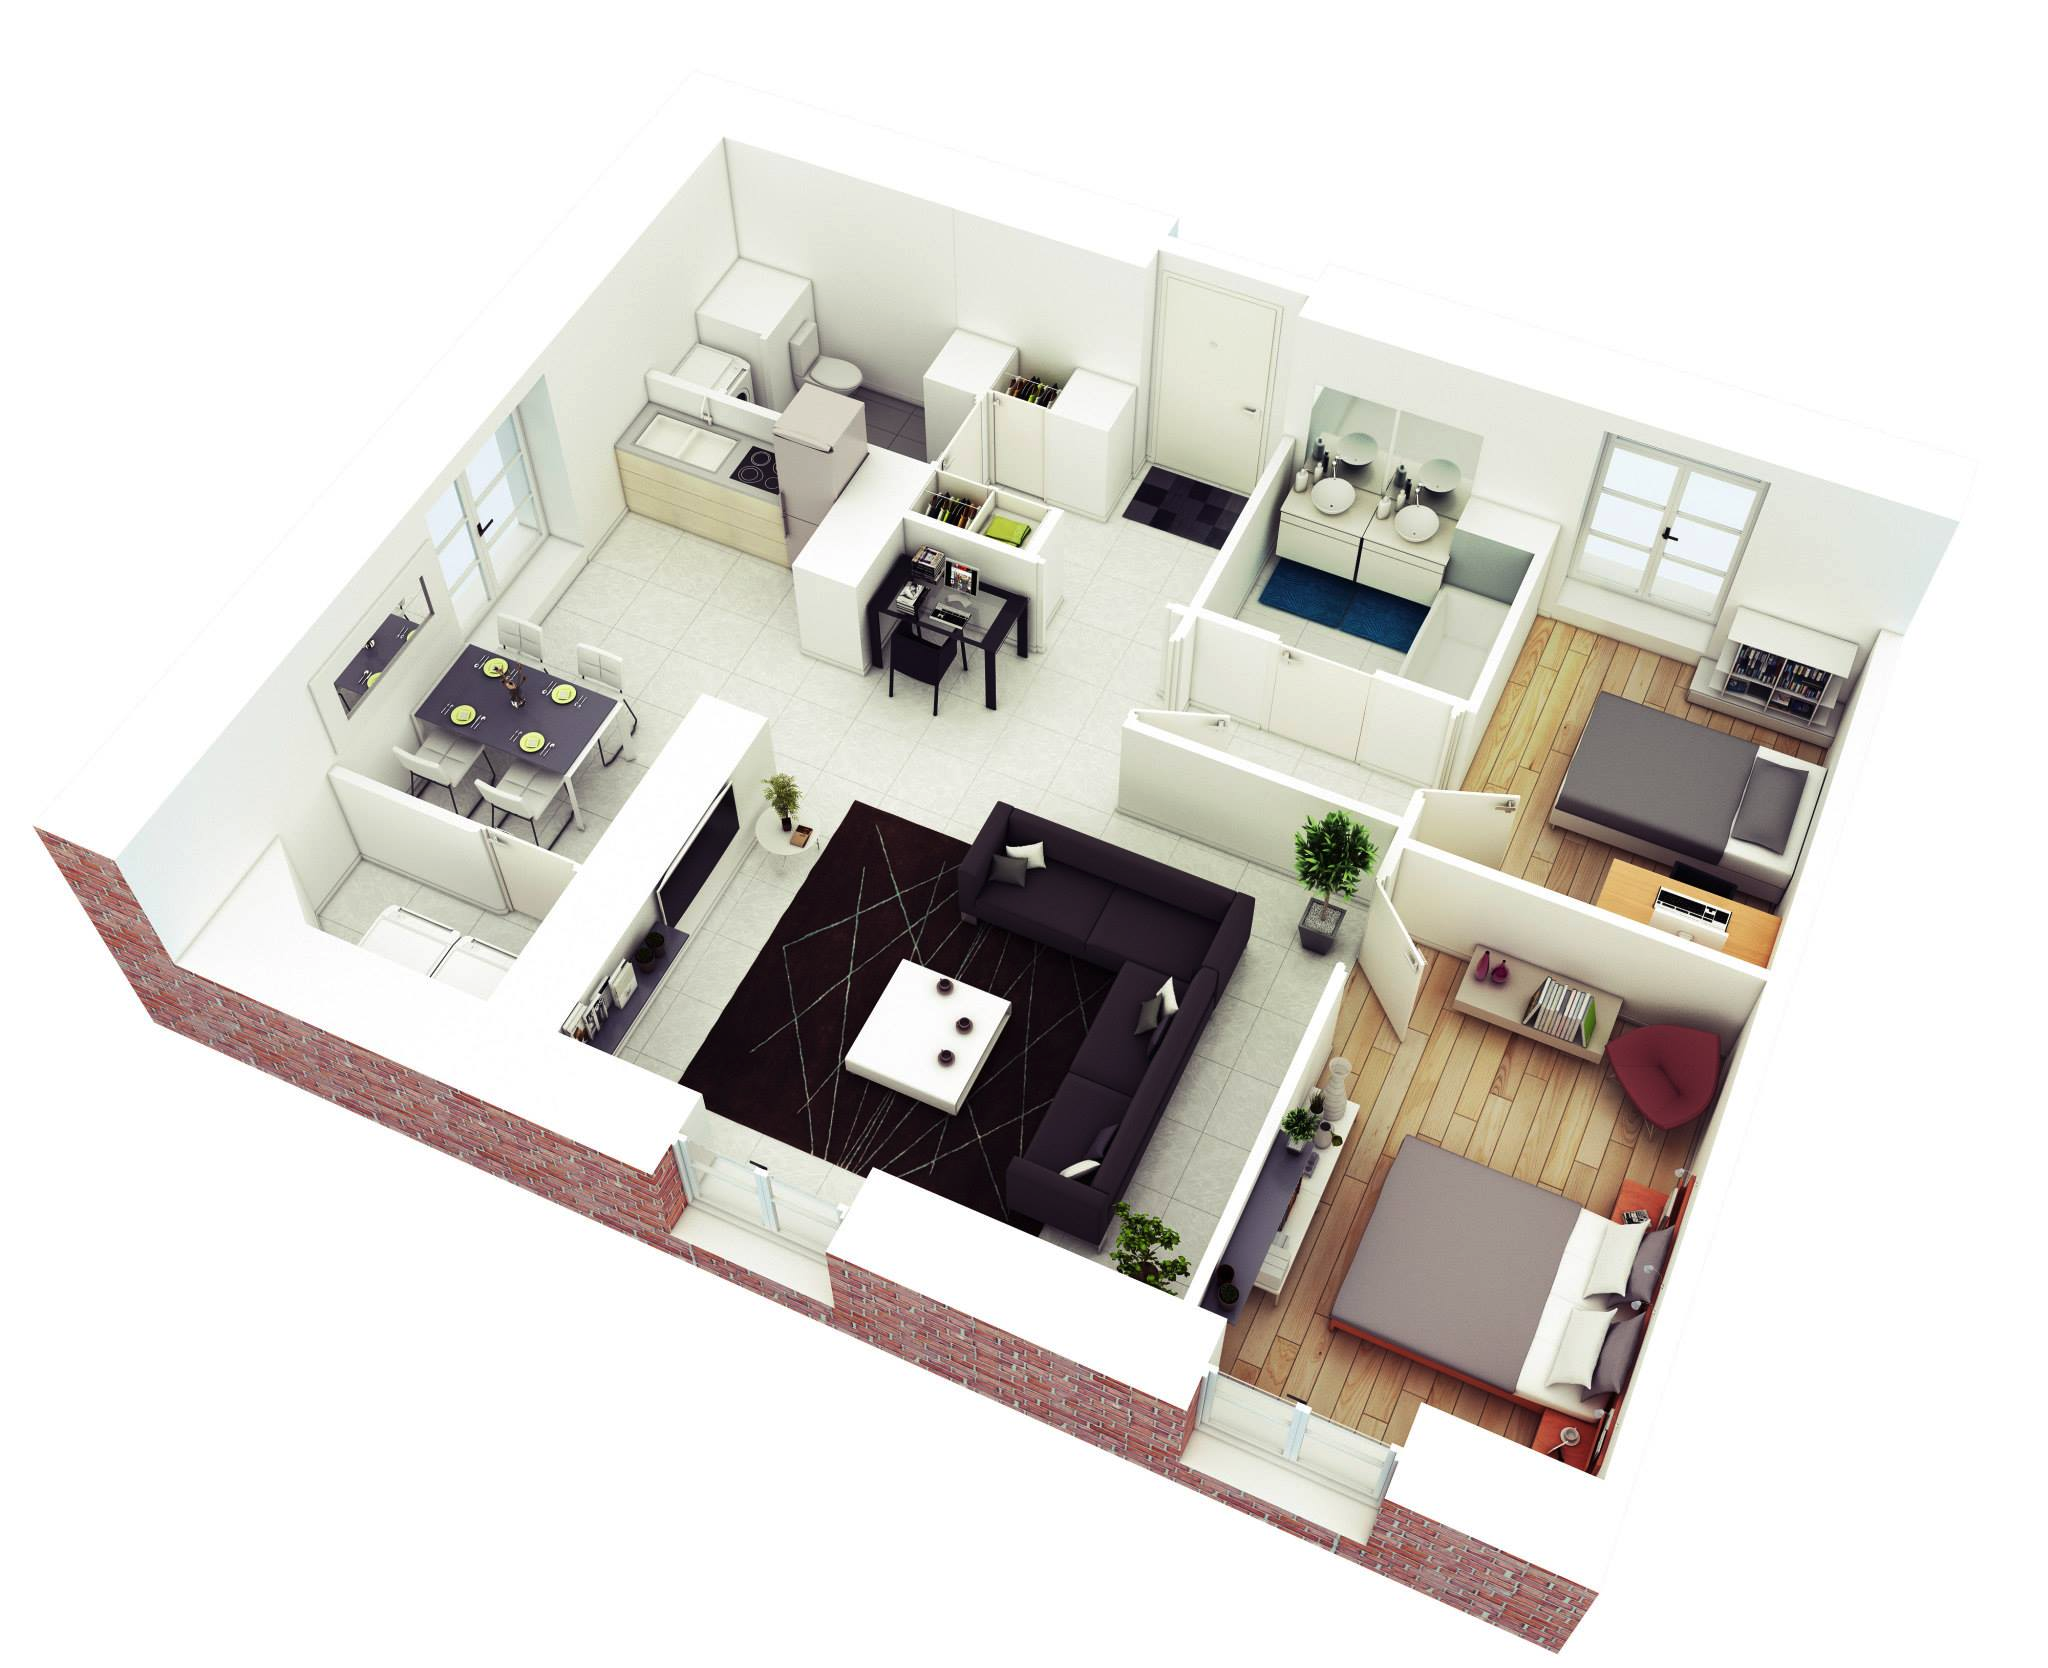 25 more 2 bedroom 3d floor plans House plan 3d view